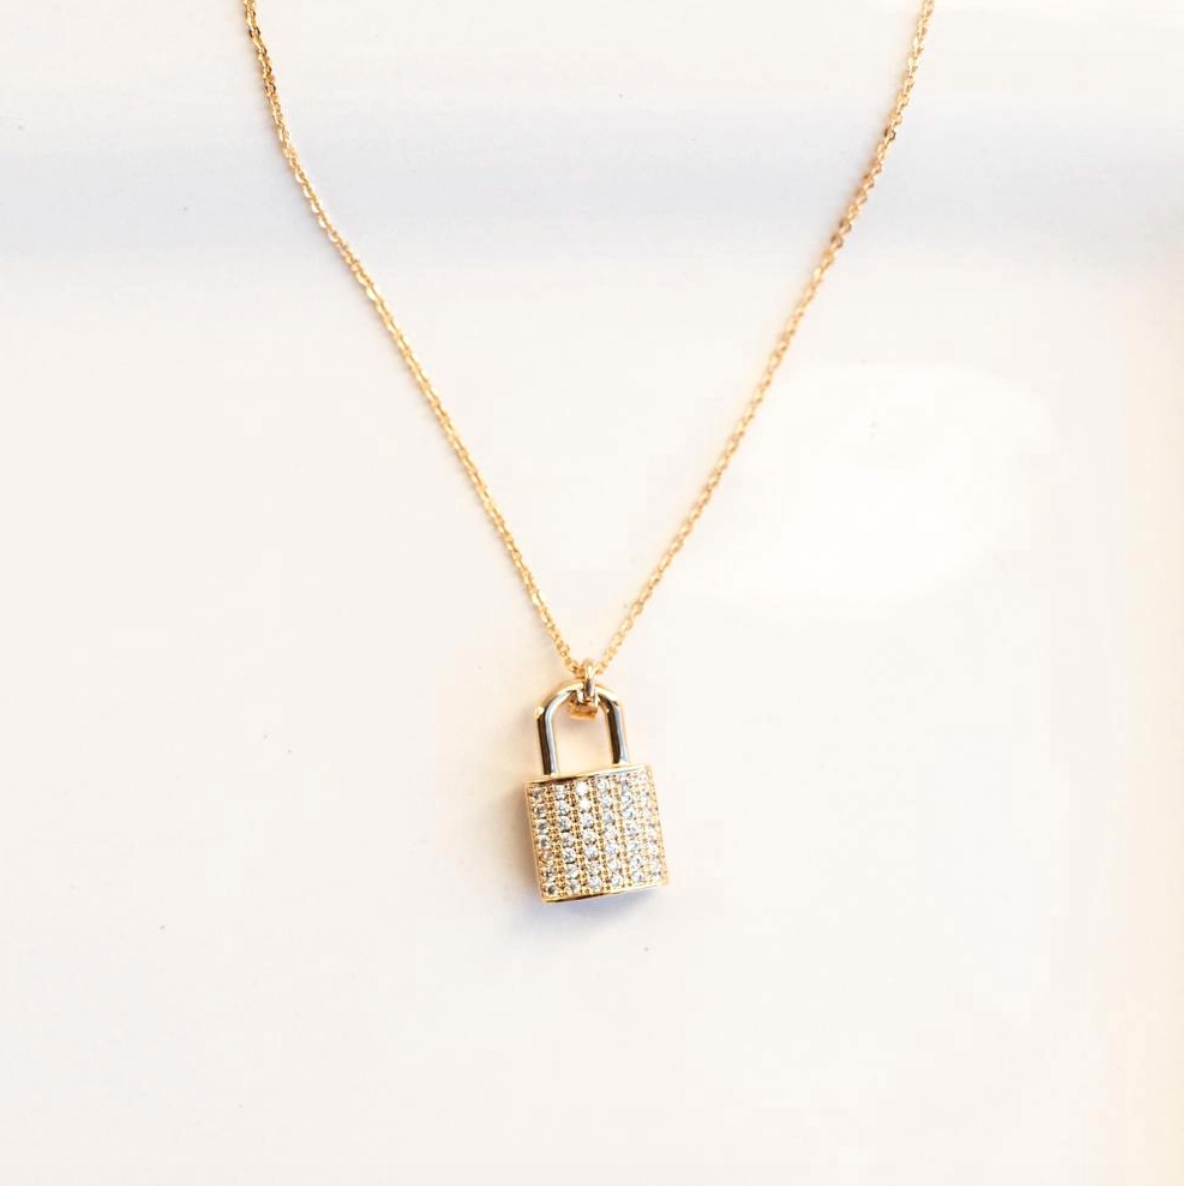 London lock necklace gold